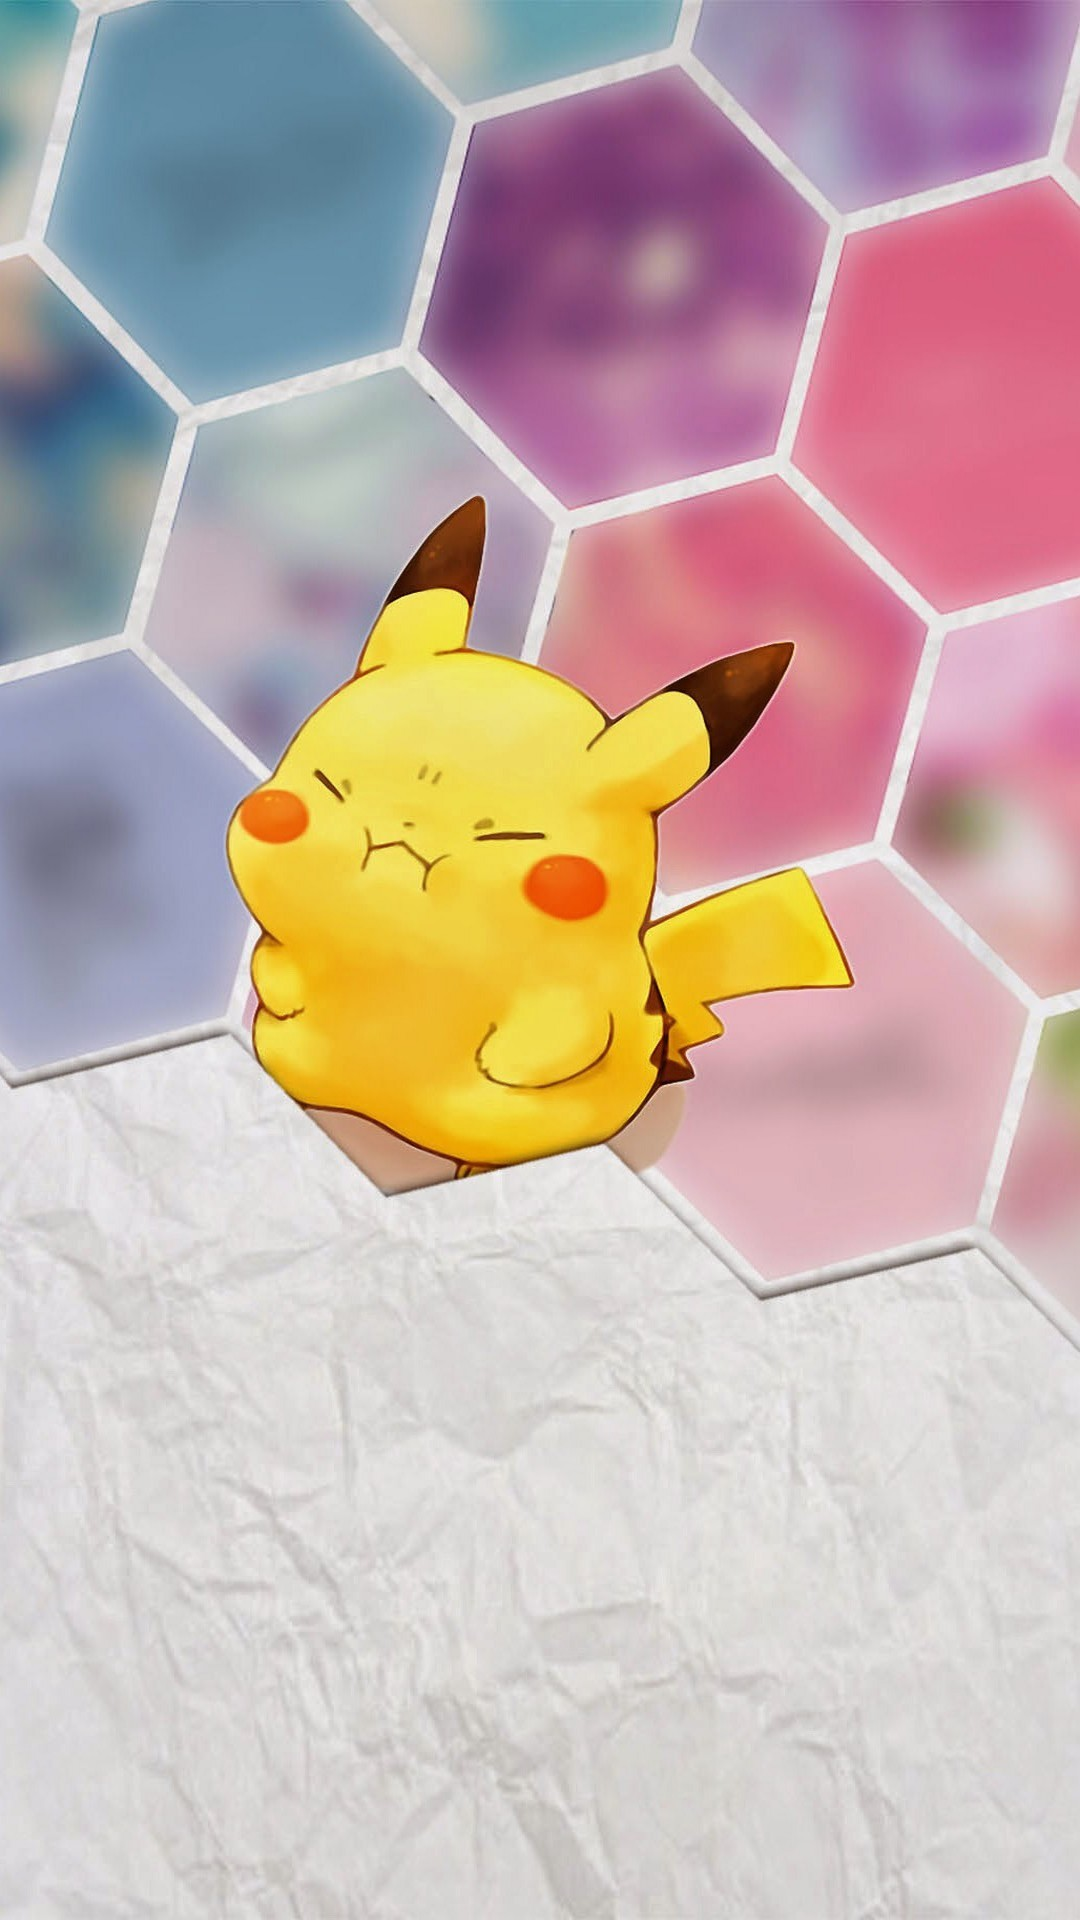 Cool Pikachu Wallpapers (77+ images)